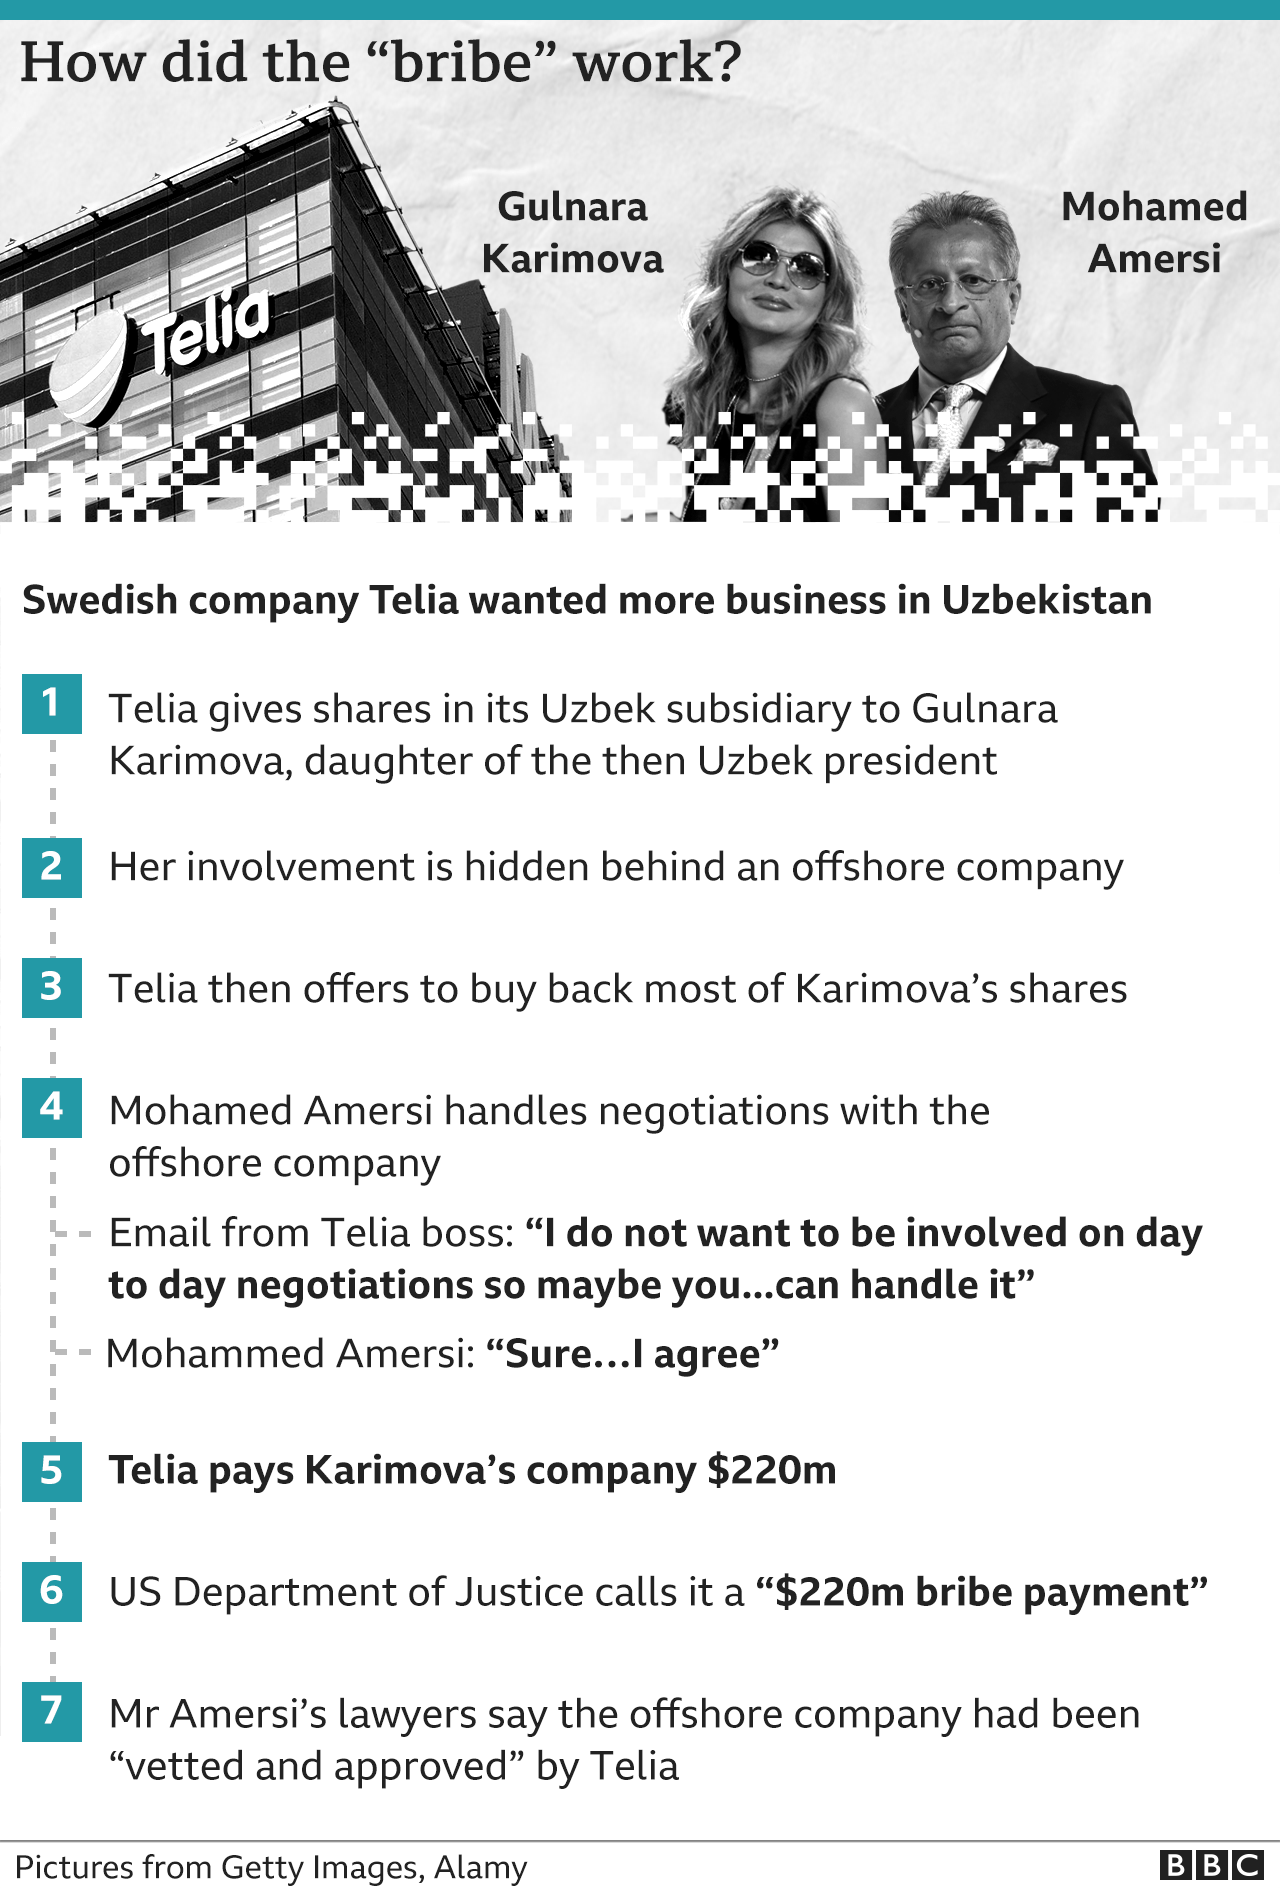 Graphic showing how the case involving Mohamed Amersi and the Uzbek deal played out